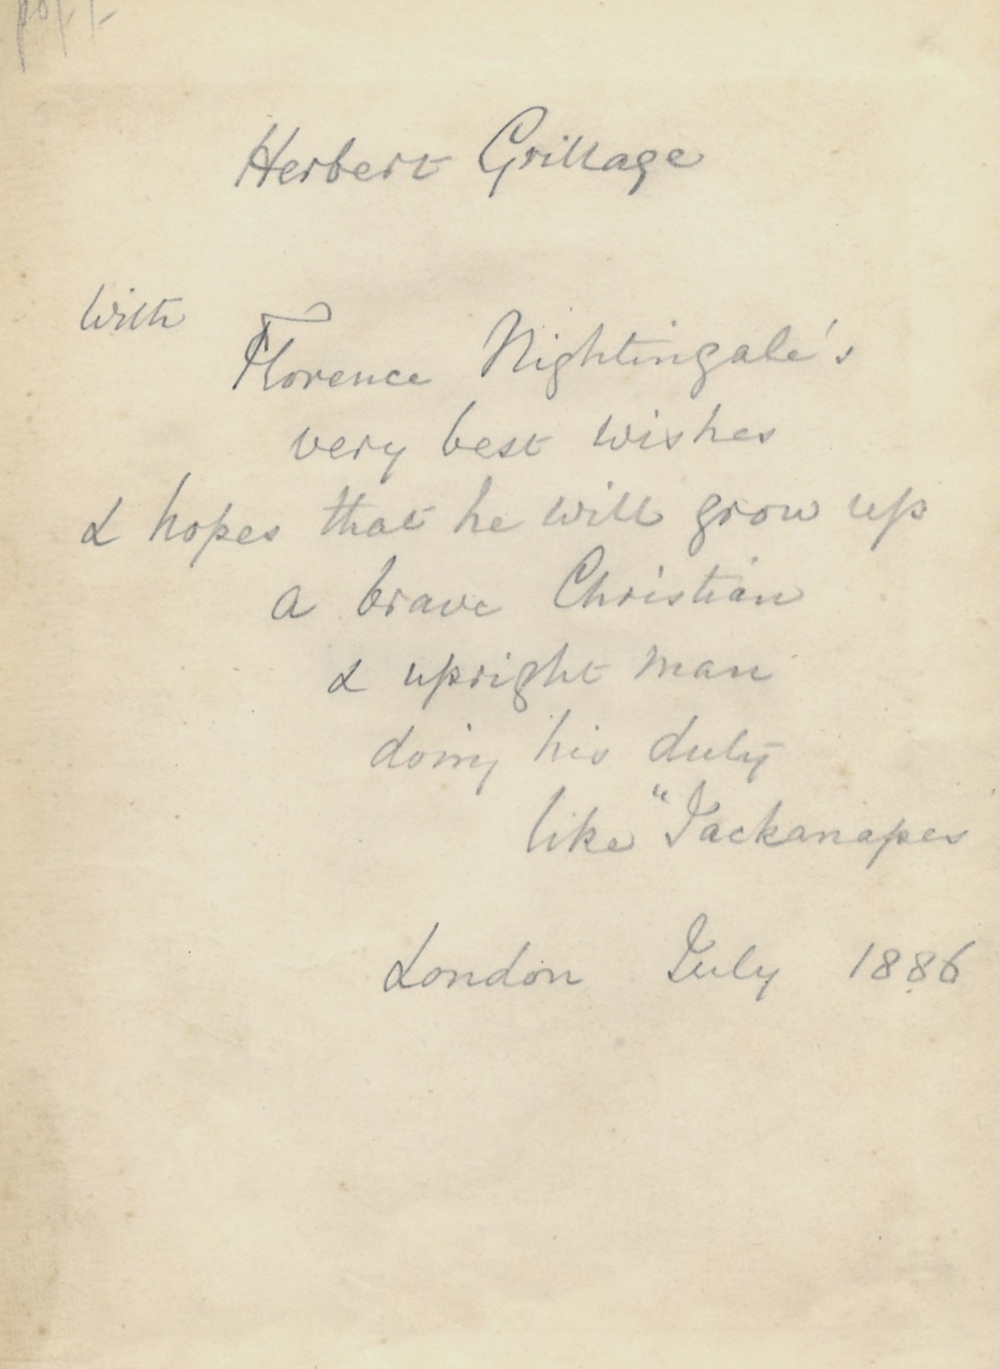 Lot 558 - NIGHTINGALE FLORENCE: (1820-1910) British Pioneer of Nursing. Book signed and inscribed, an 8vo